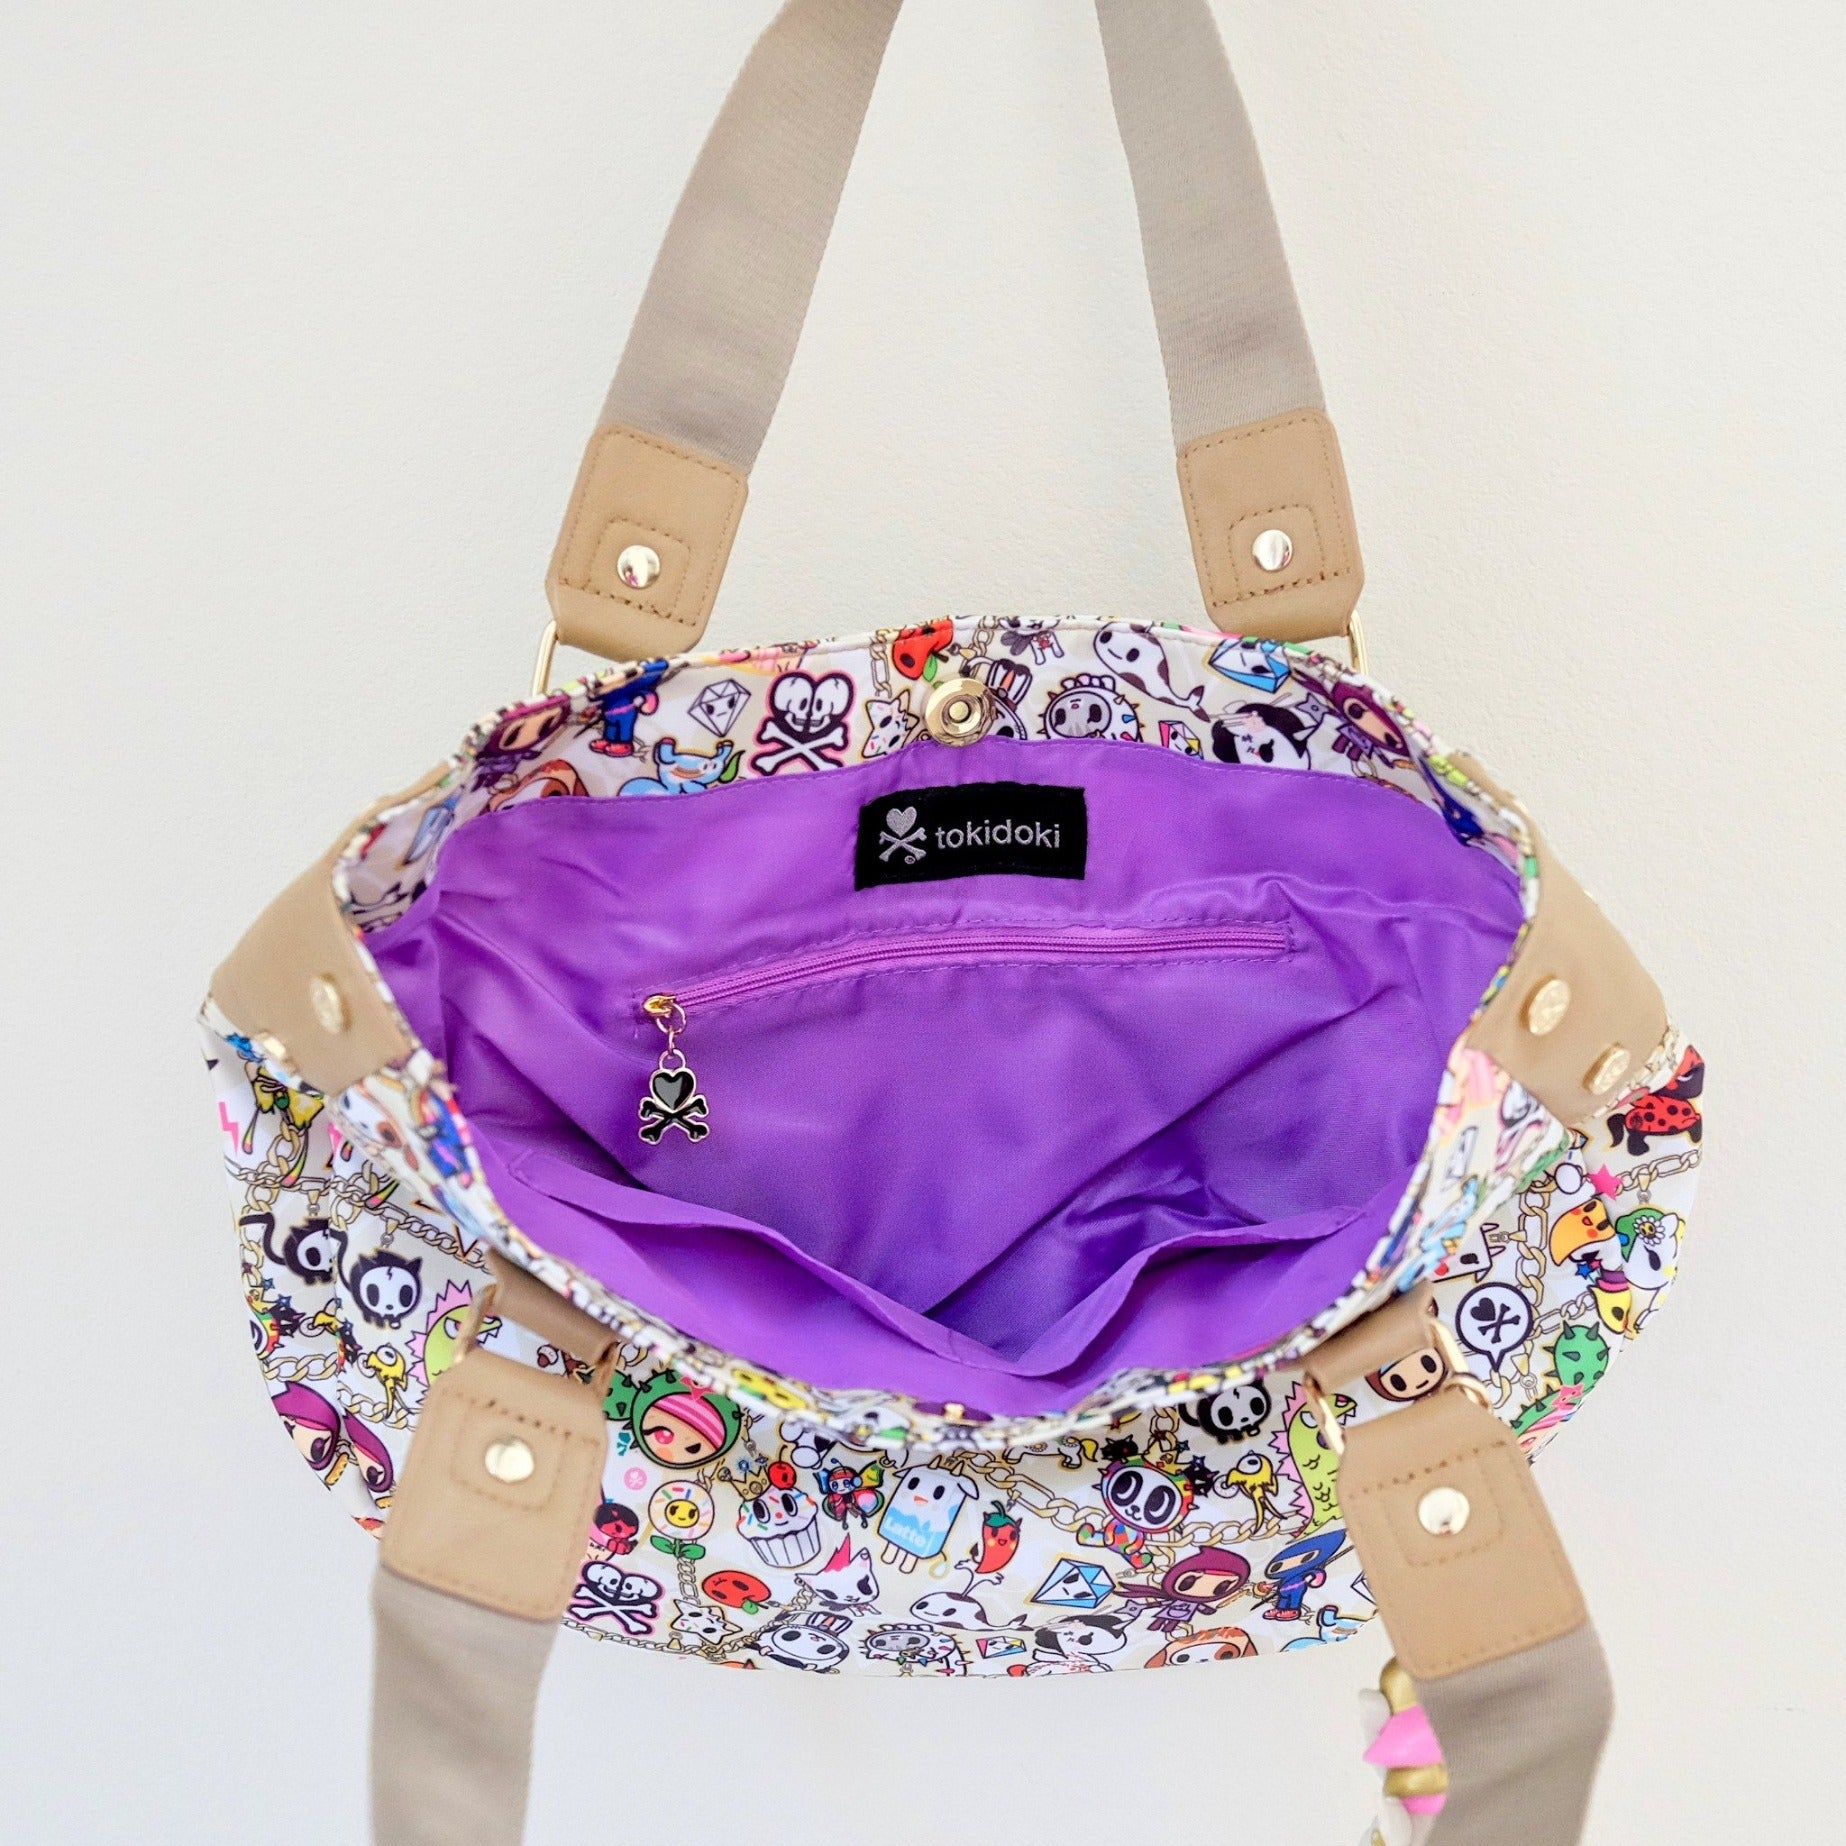 tokidoki kawaii Chained Love Hobo Bag purple interior